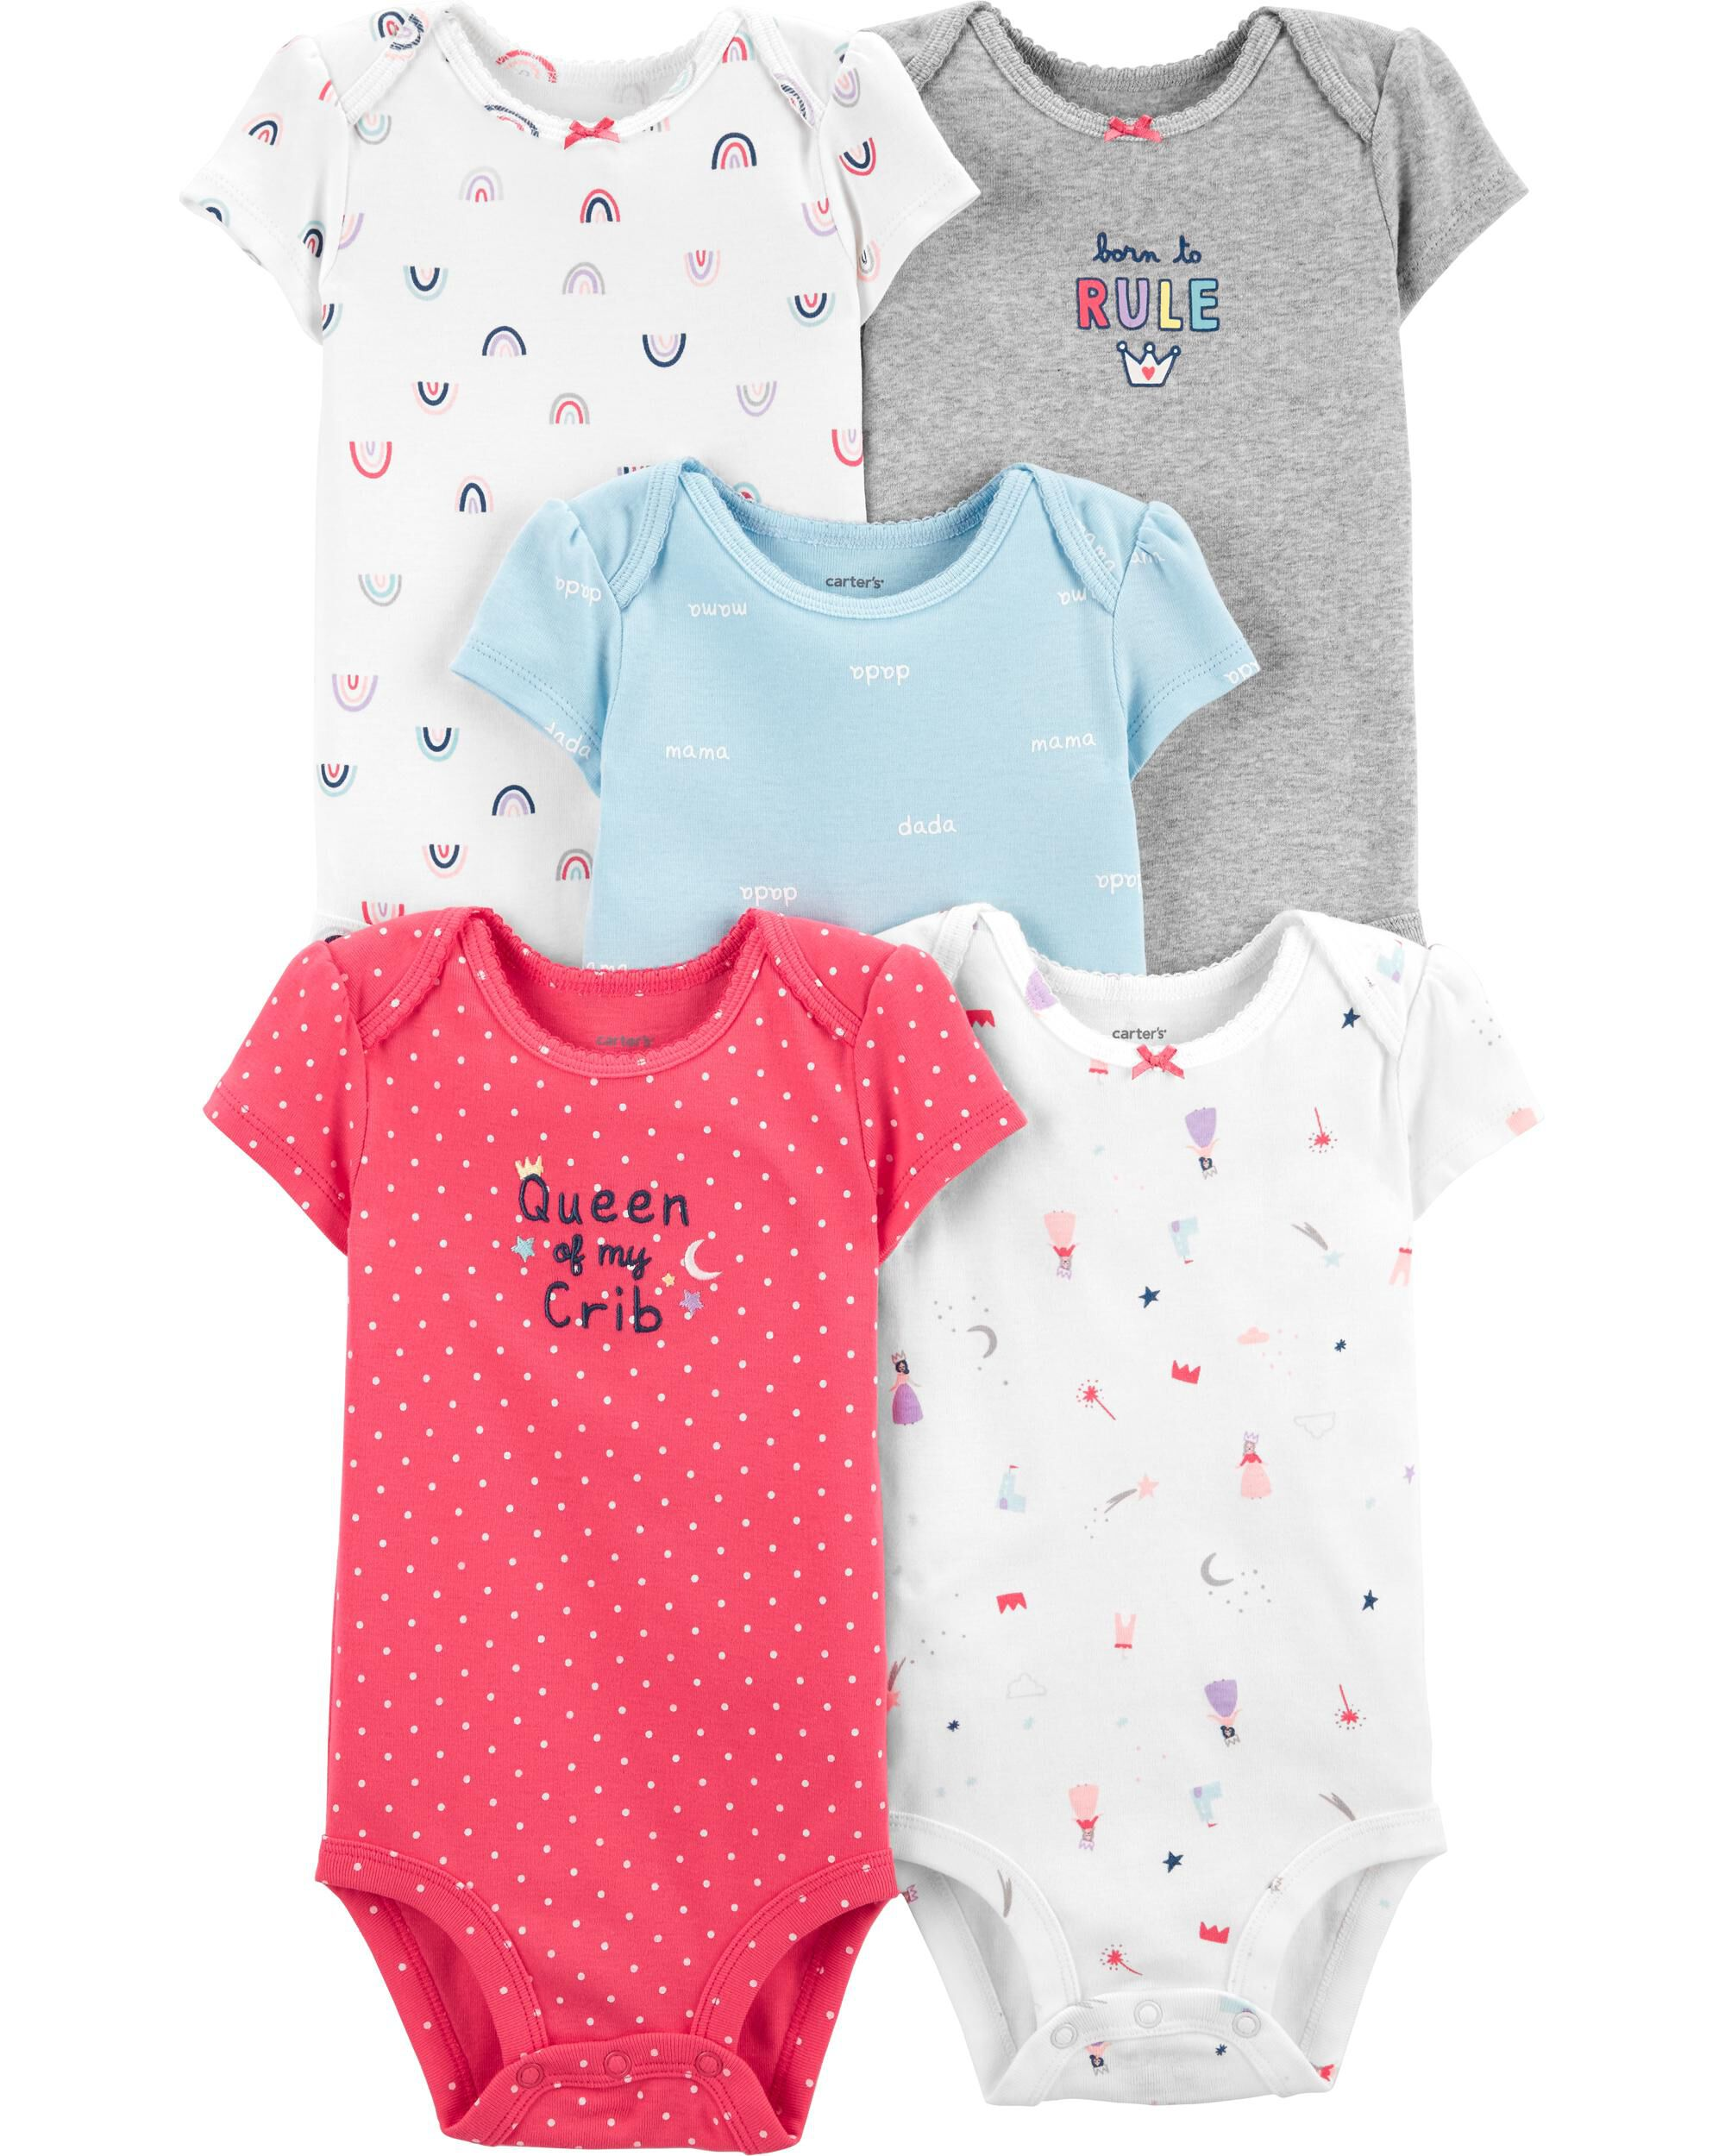 Infant Girls Clothes Bundle Buy Now Clothing, Shoes & Accessories